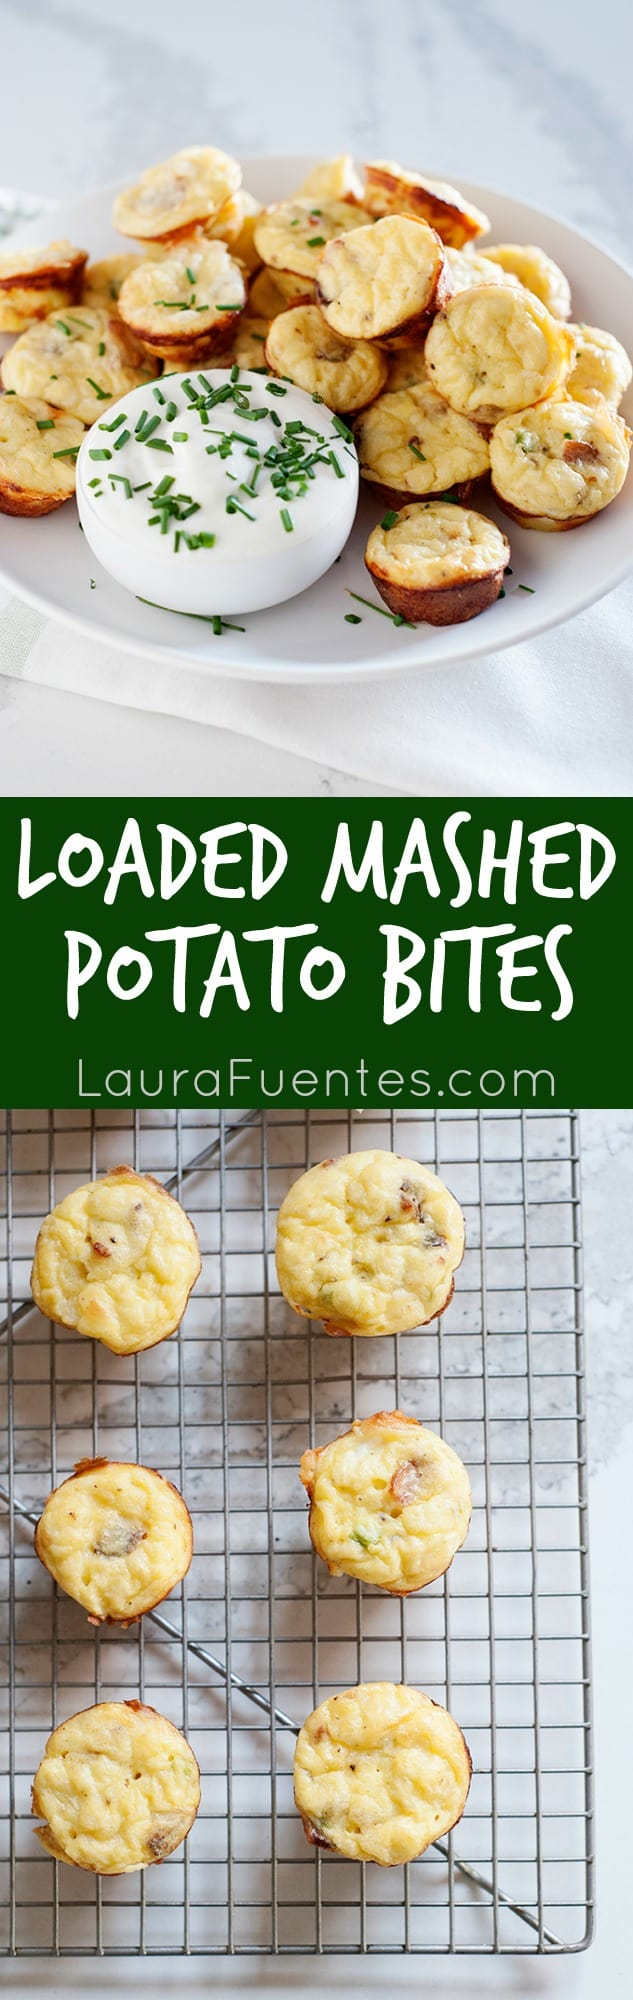 These Loaded Mashed Potato Bites are the perfect side dish. They go with practically everything and because they are bite-sized, they are that much more fun to eat!